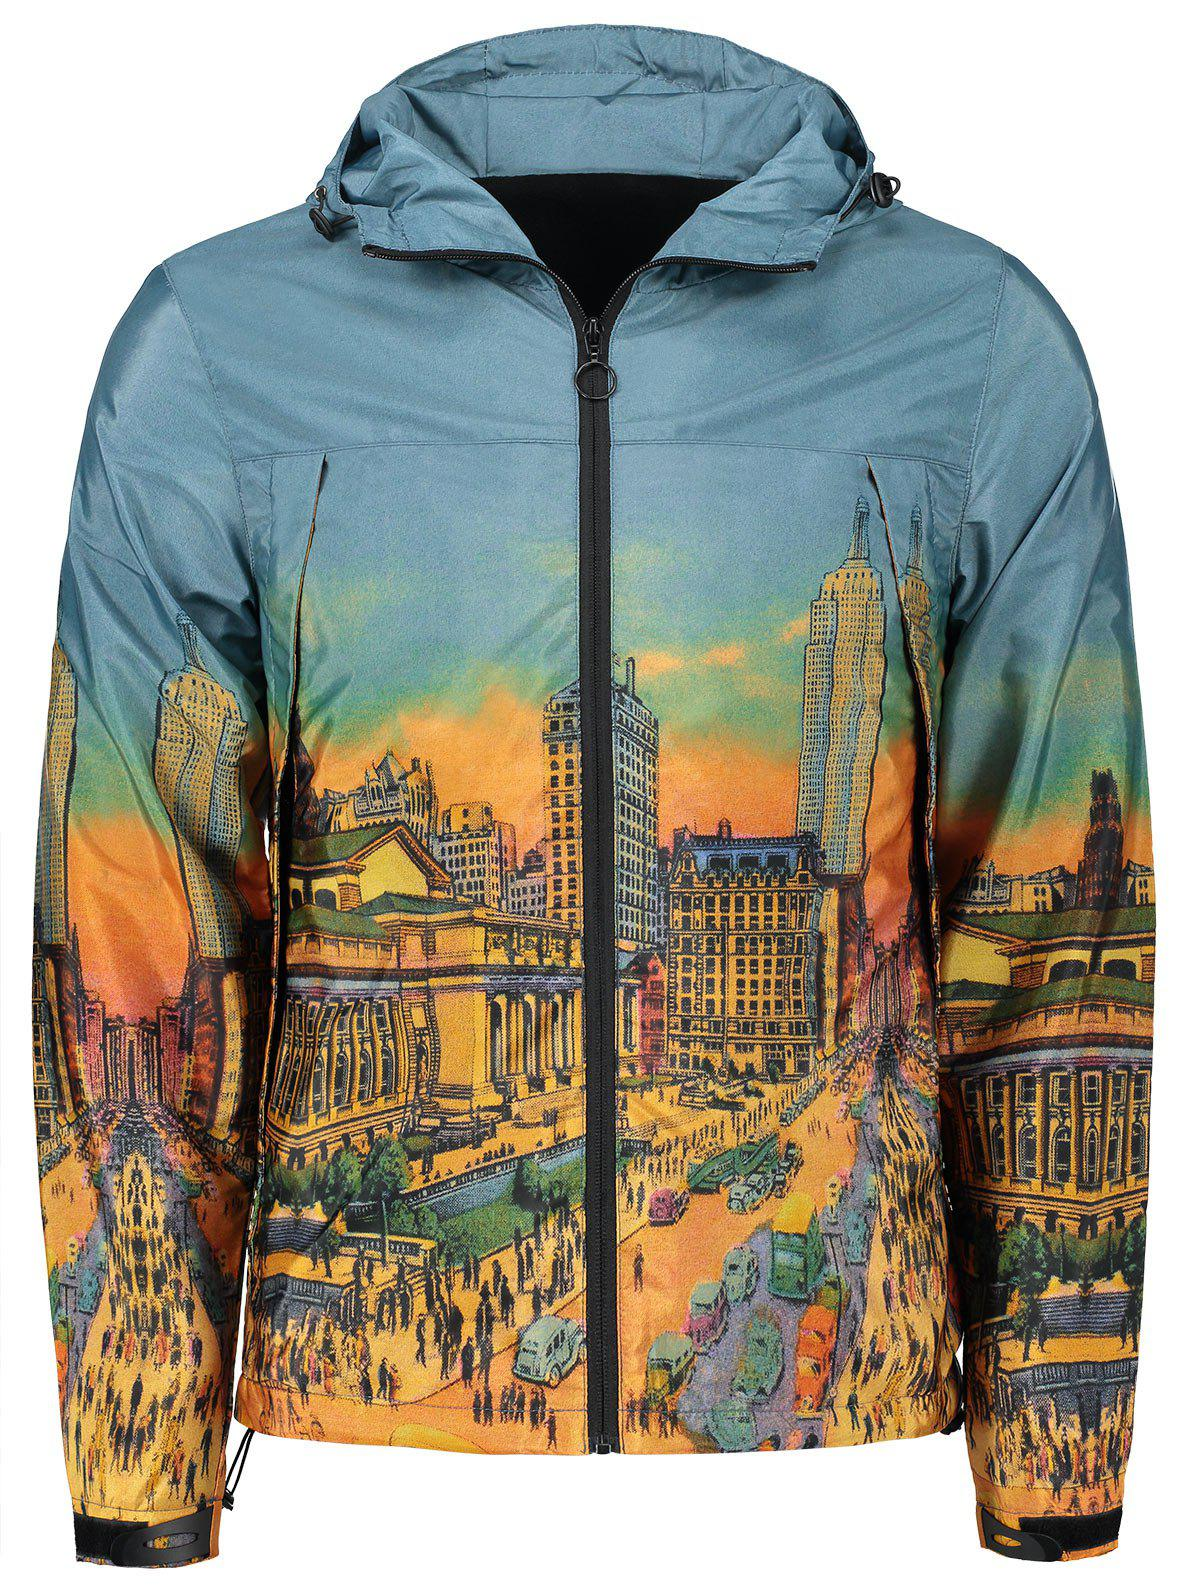 Store Cartoon City Streetscape Print Zipper Up Windbreaker